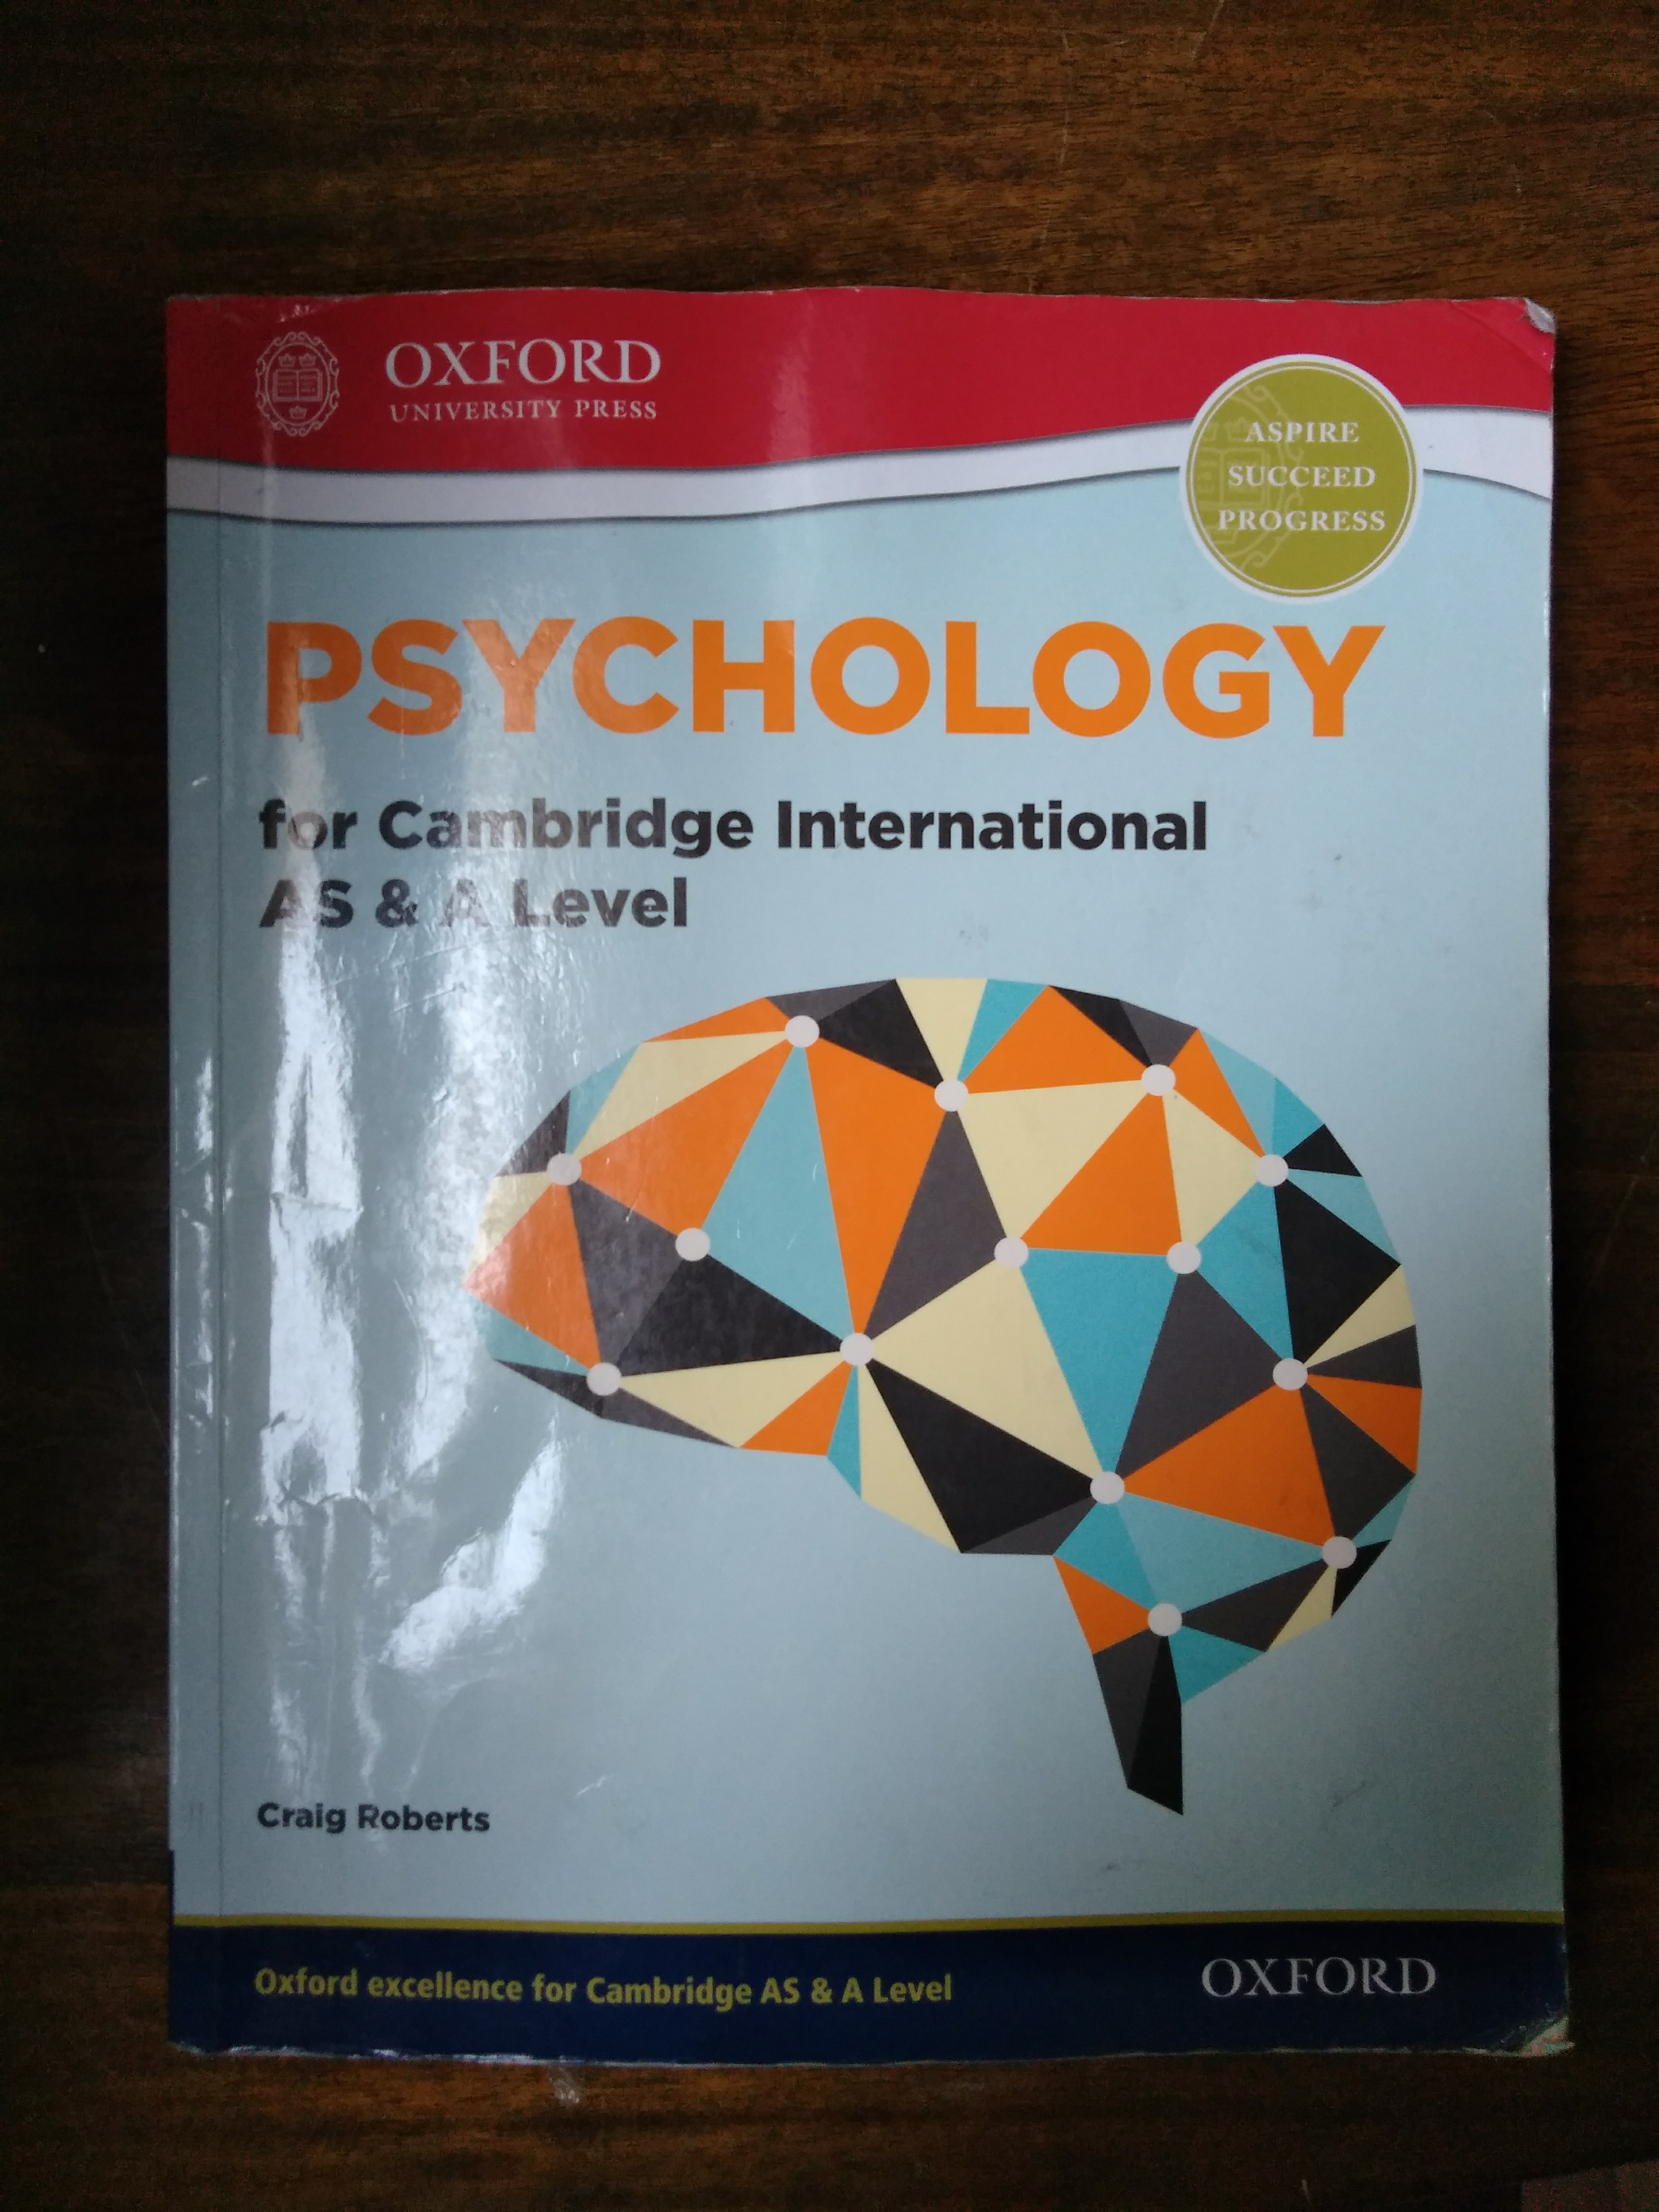 Psychology Textbook Cambridge AS and A2 level